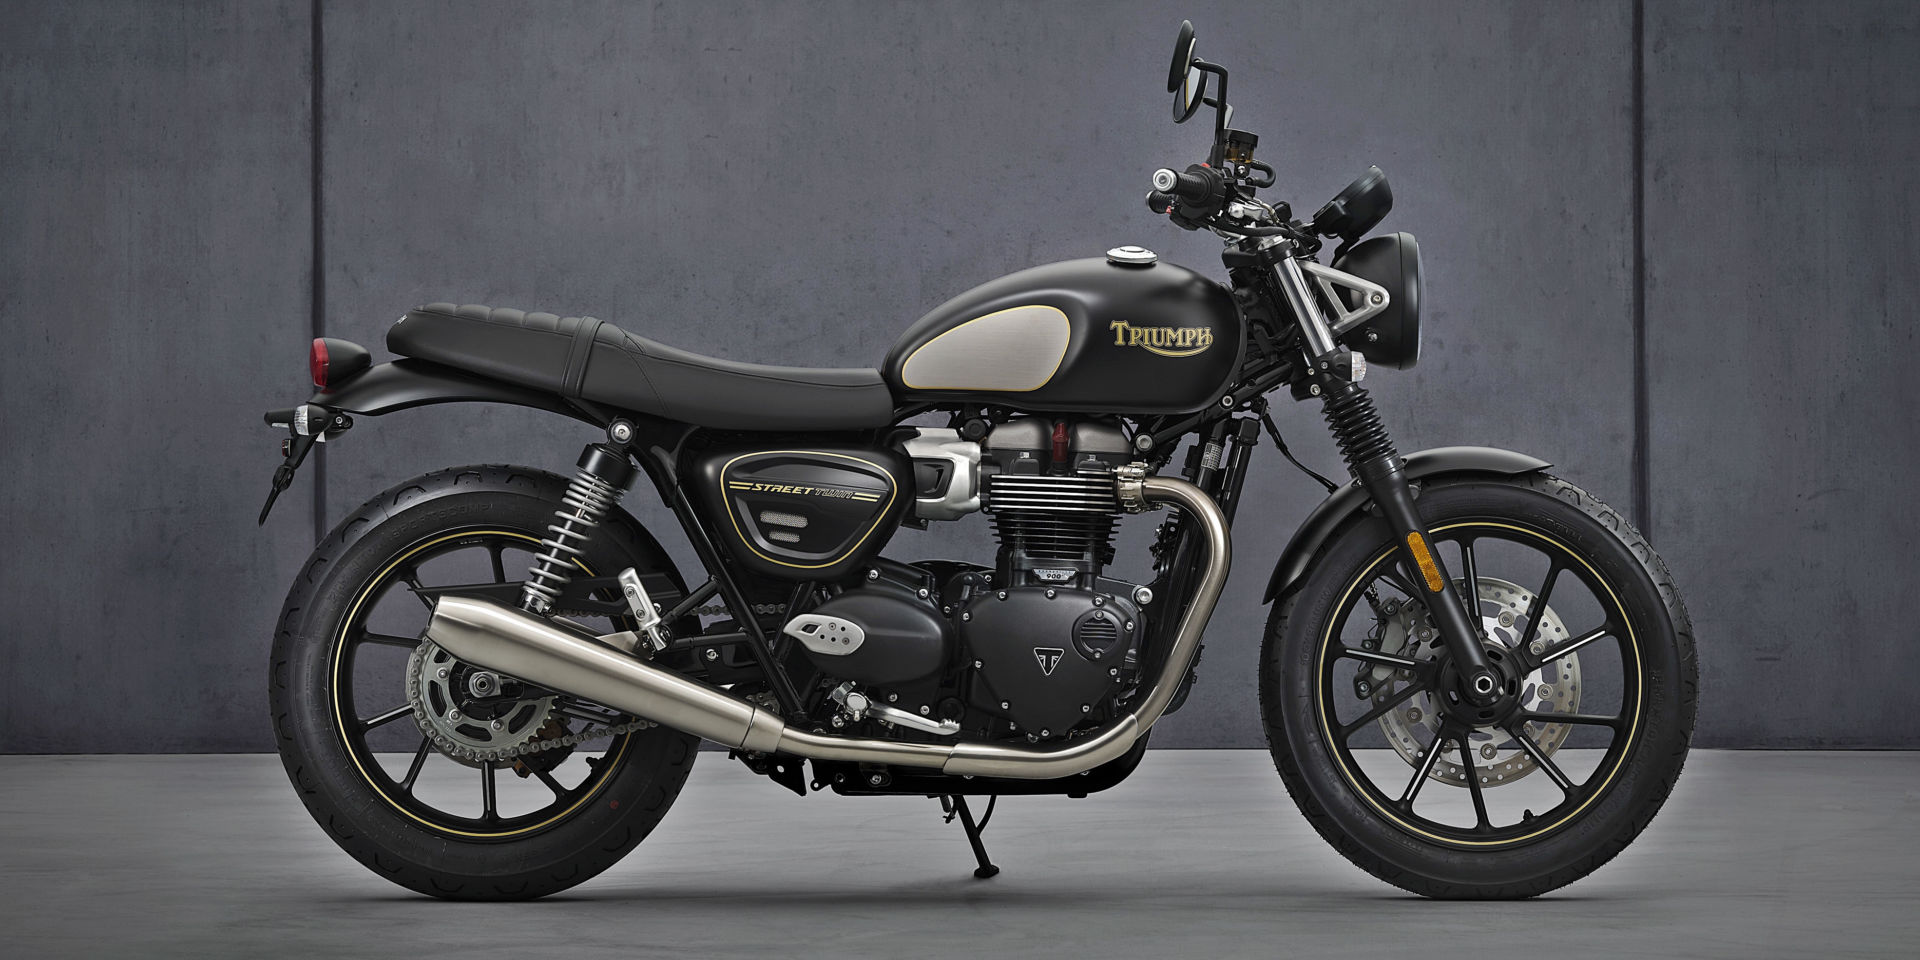 Triumph Introduces More Powerful 2022 Bonneville Lineup